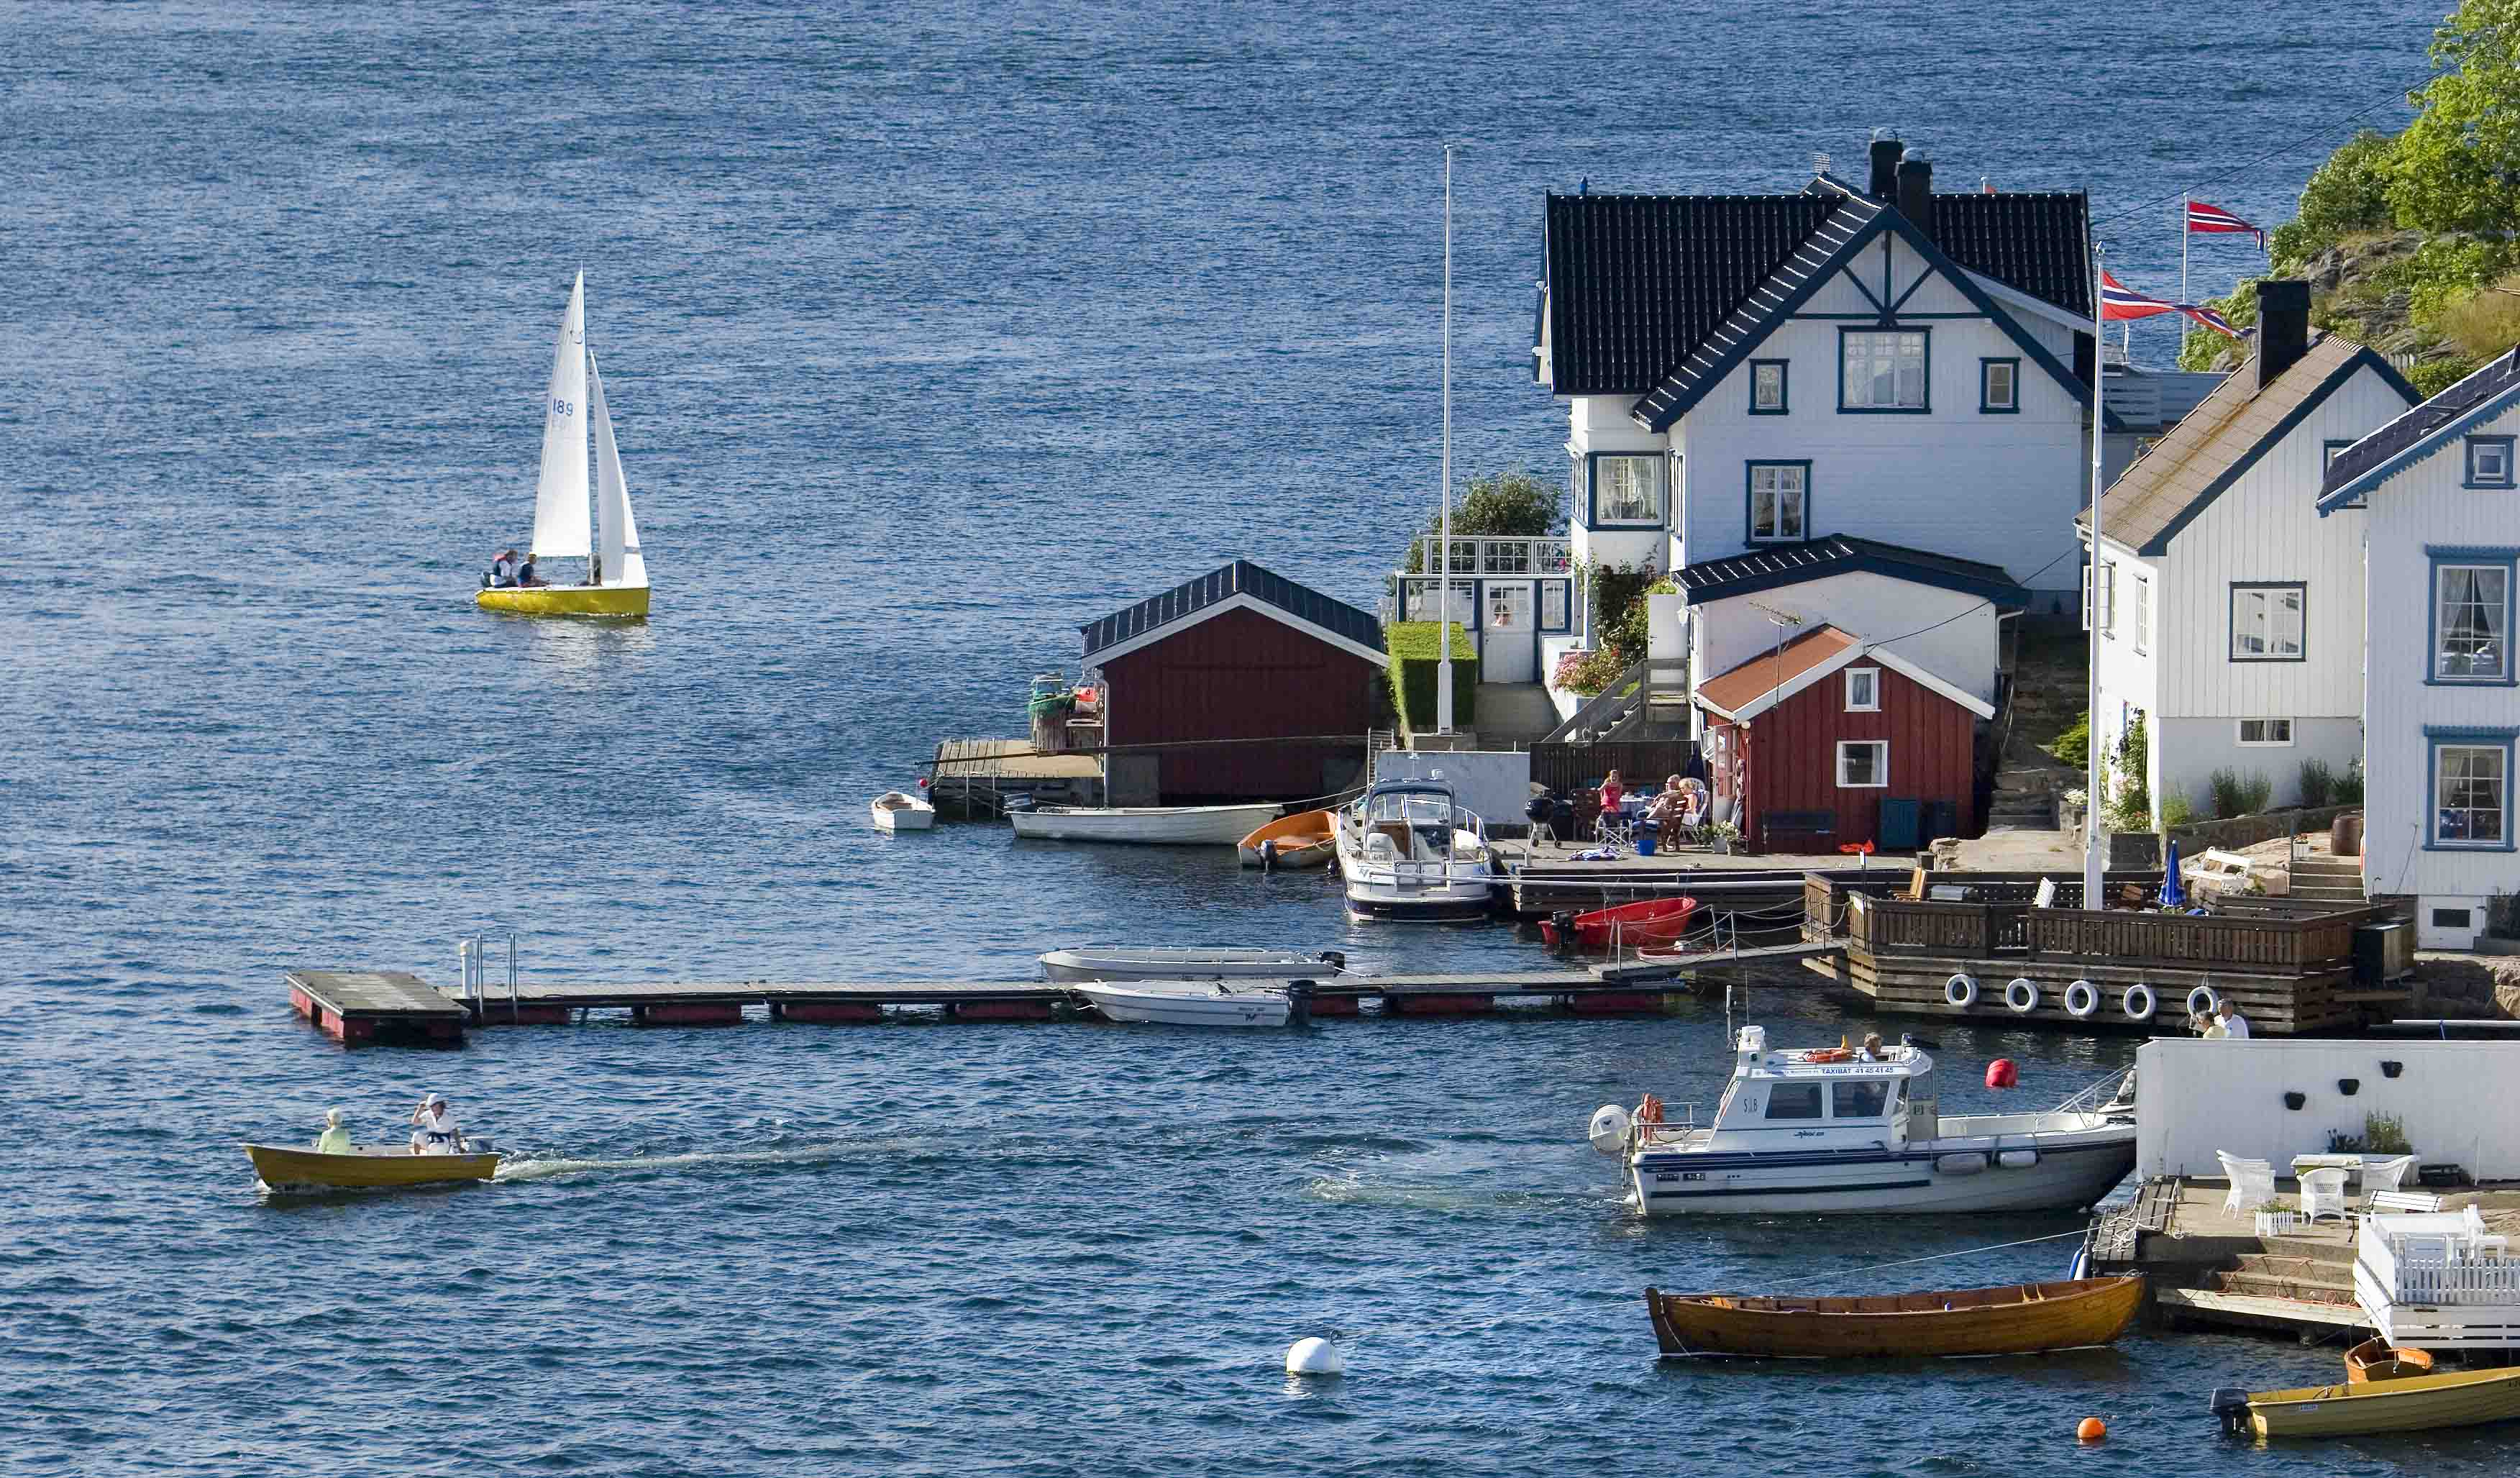 Sail boat, docks and houses on Lyngør, Kristiansand.